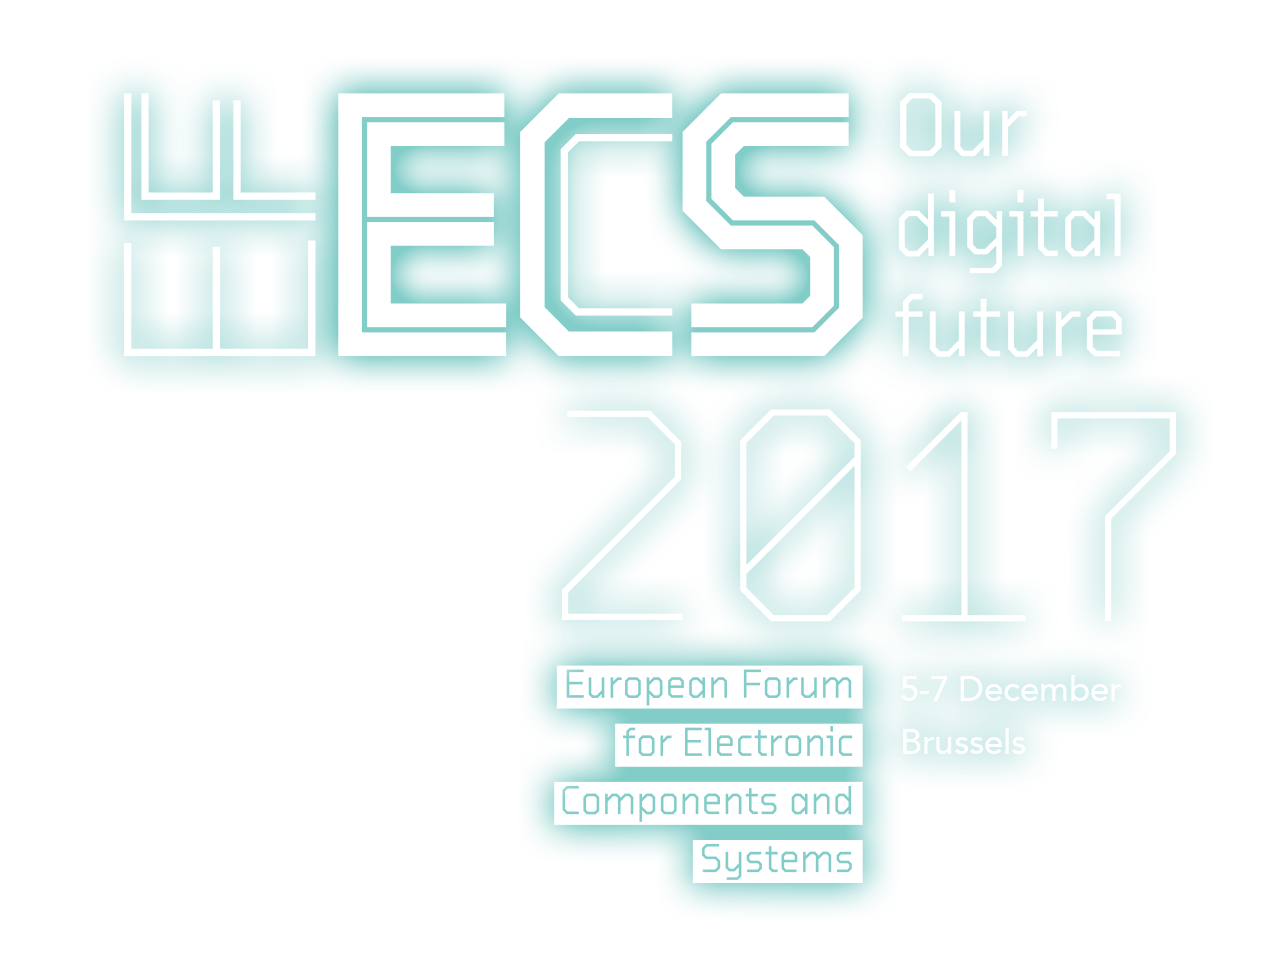 EFECS 2017 - European Forum for Electronic Components and Systems